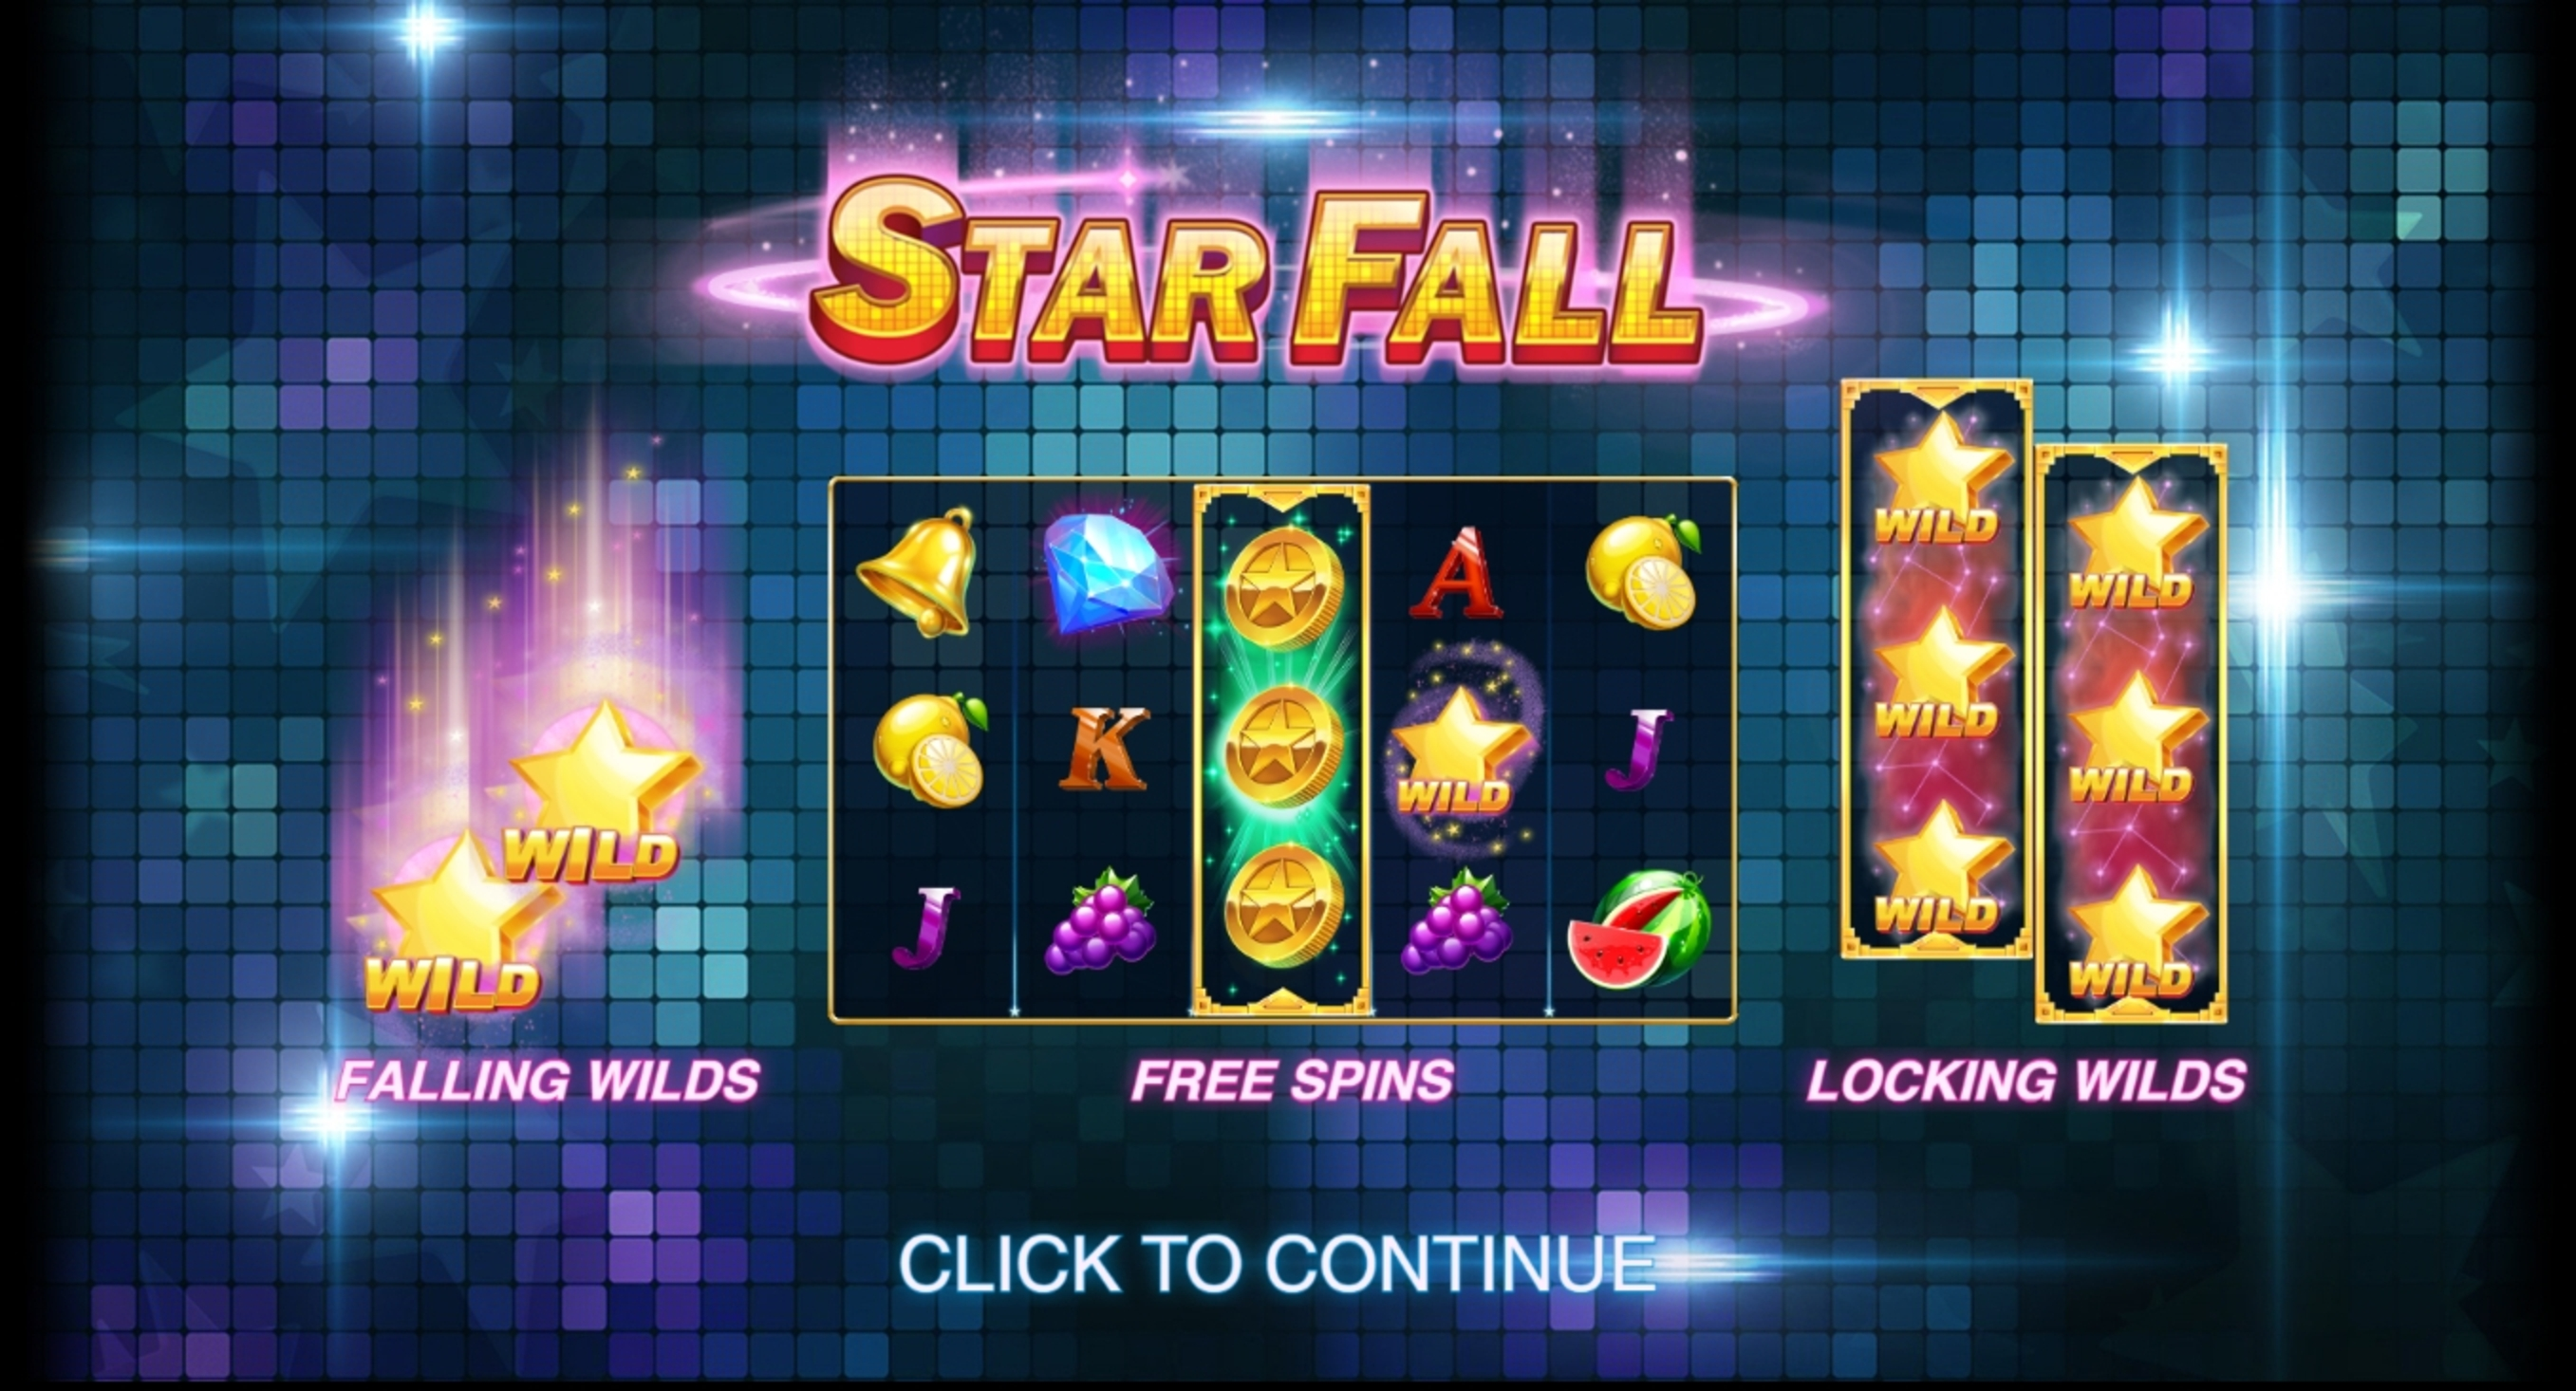 Play Star Fall Free Casino Slot Game by Push Gaming